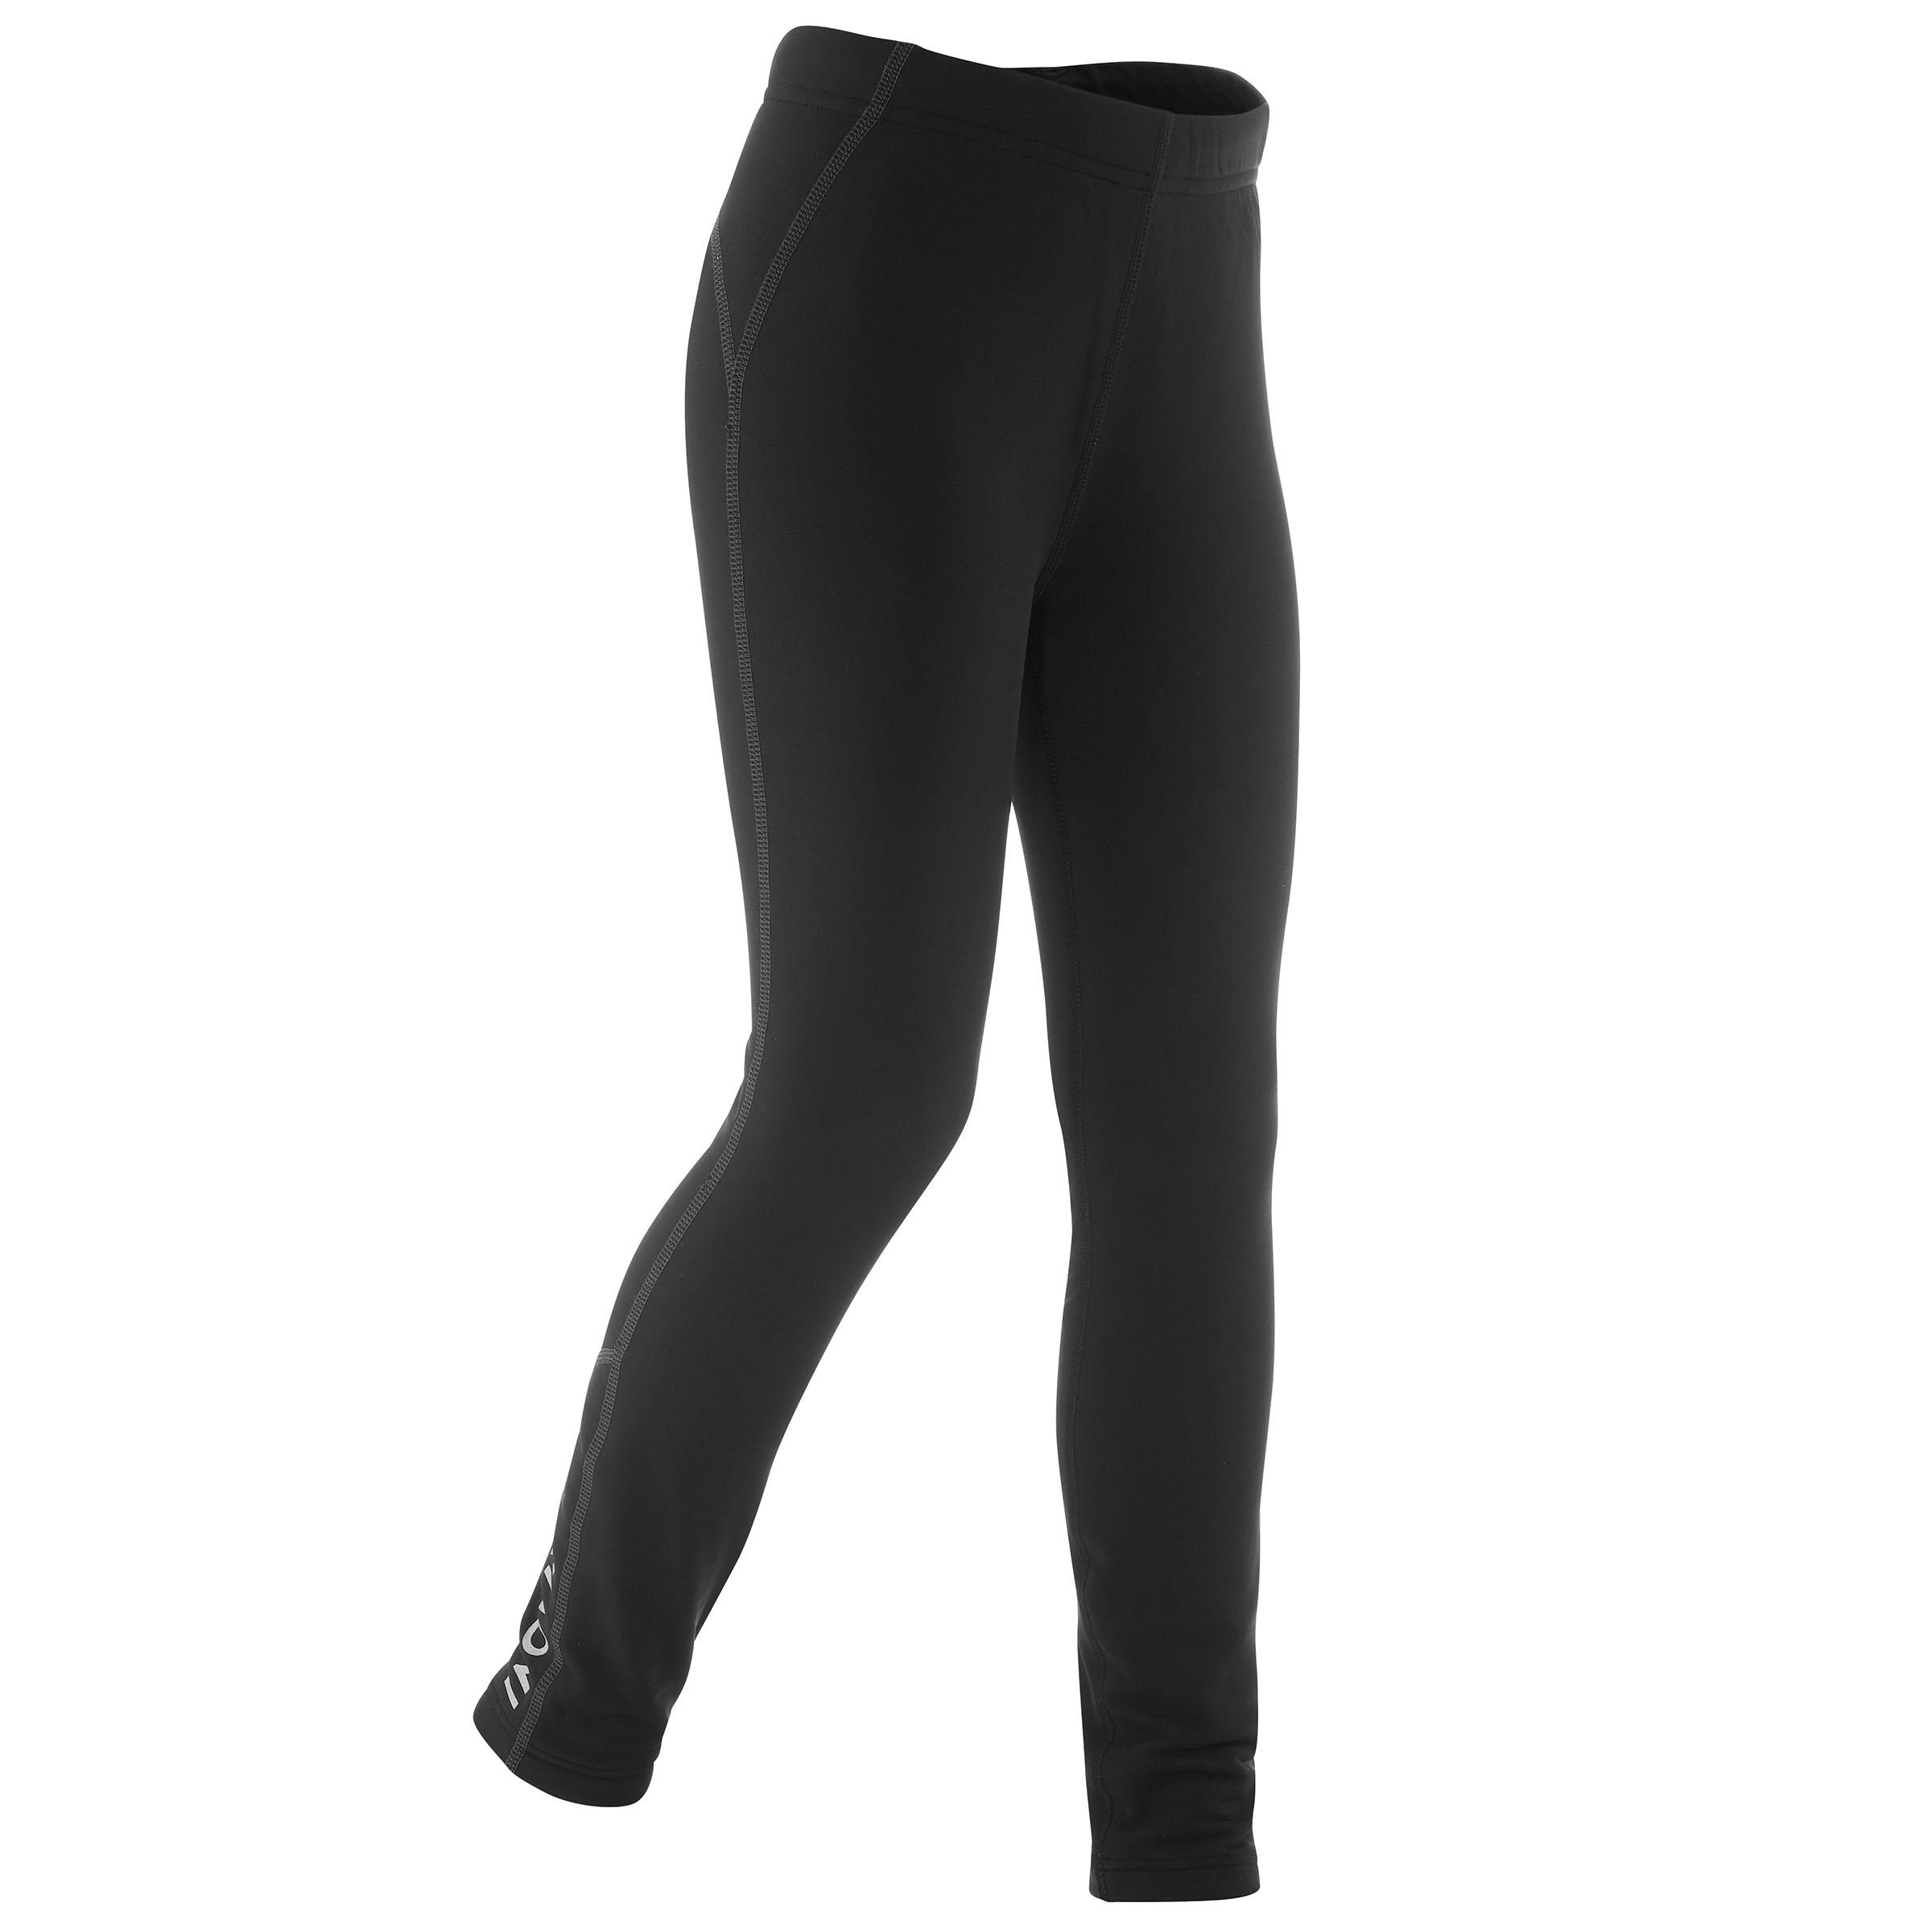 XC S 100 Junior Cross-Country Skiing Tights - Black